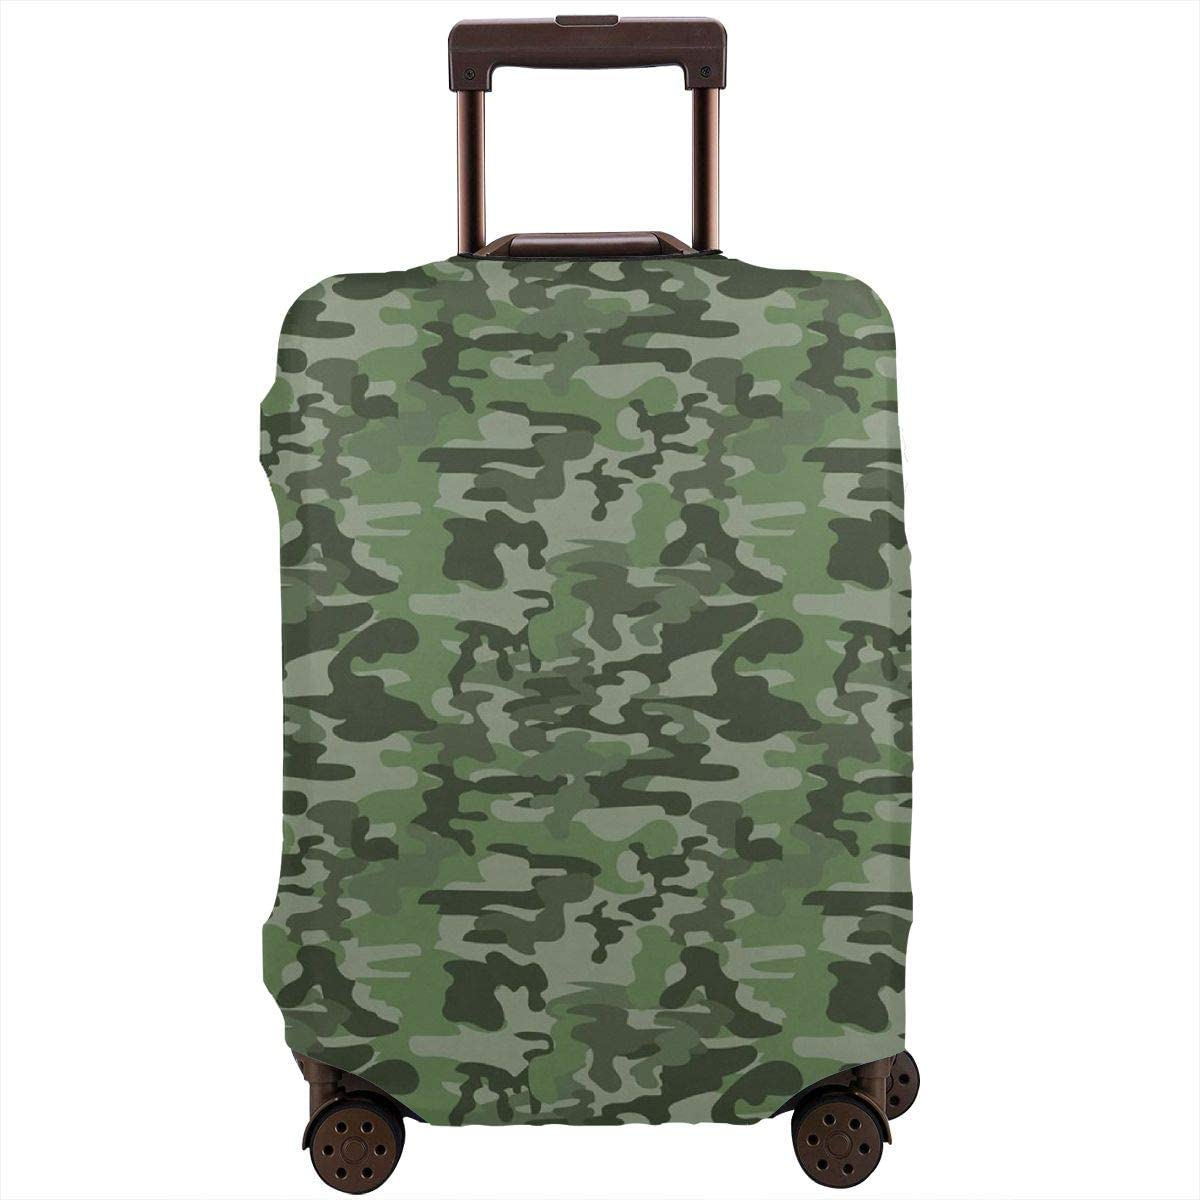 Luggage Cover Forest Green Camouflage Classical Protective Travel Trunk Case Elastic Luggage Suitcase Protector Cover